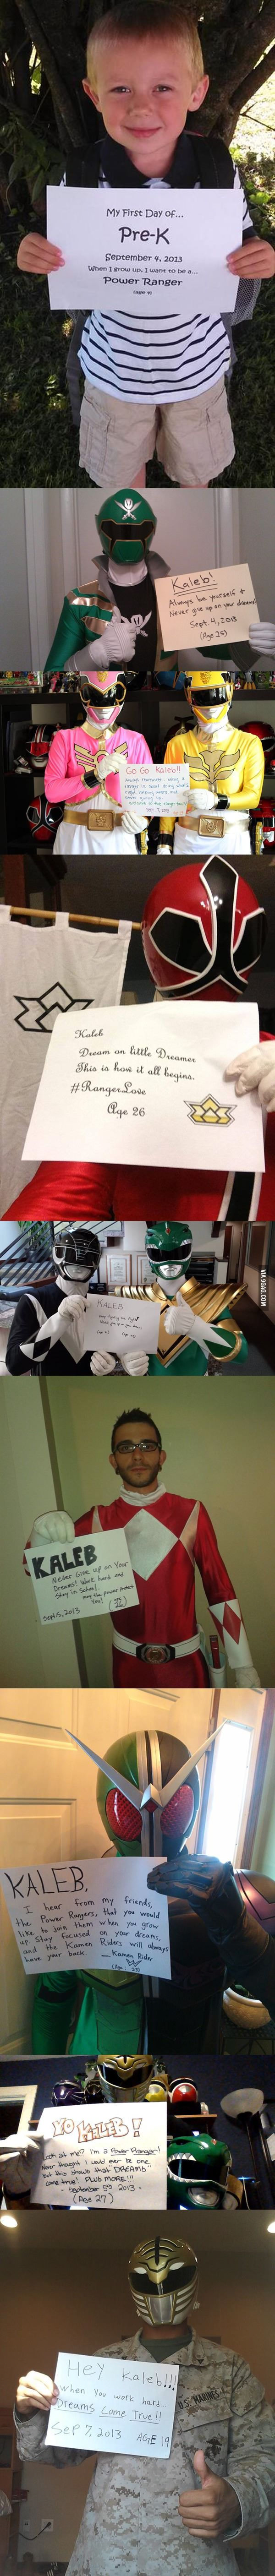 So this kid wants to grow up to be a Power Ranger. The Power Rangers seem to approve.